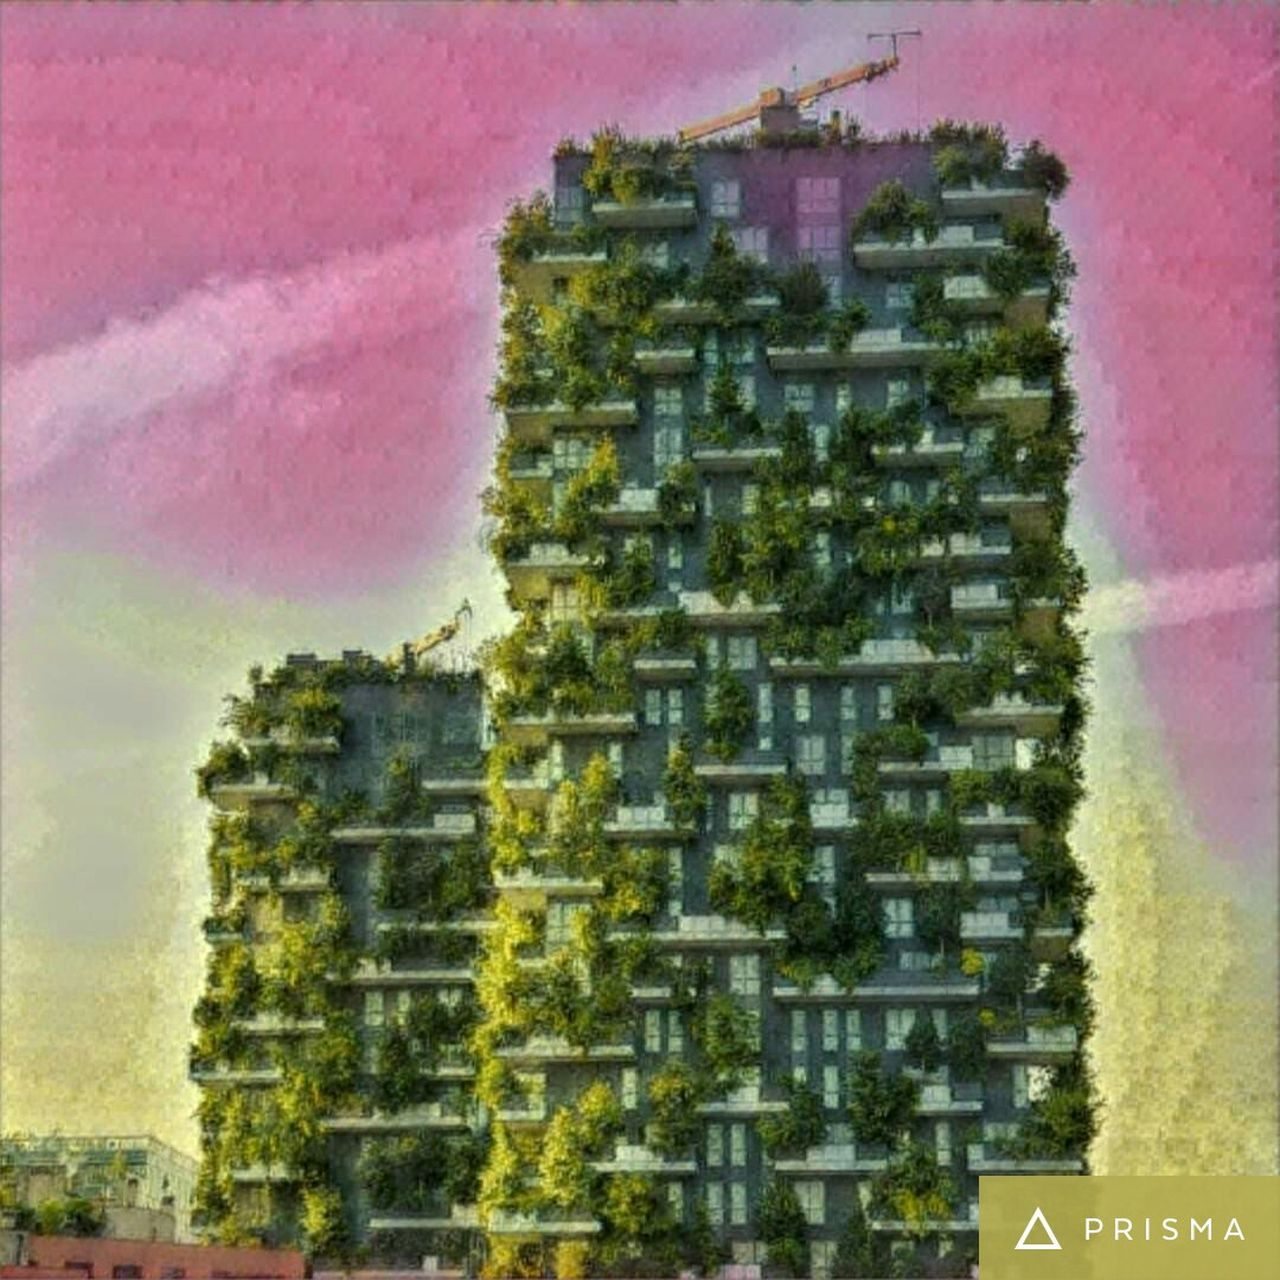 Prisma Architecture Vertical Garden Milano Italy Built Structure Multi Colored Outdoors No People Verticale  Bosco Verticale Porta Nuova Travel Summer Time  Evening Sun Summer Time  Balcony Garden